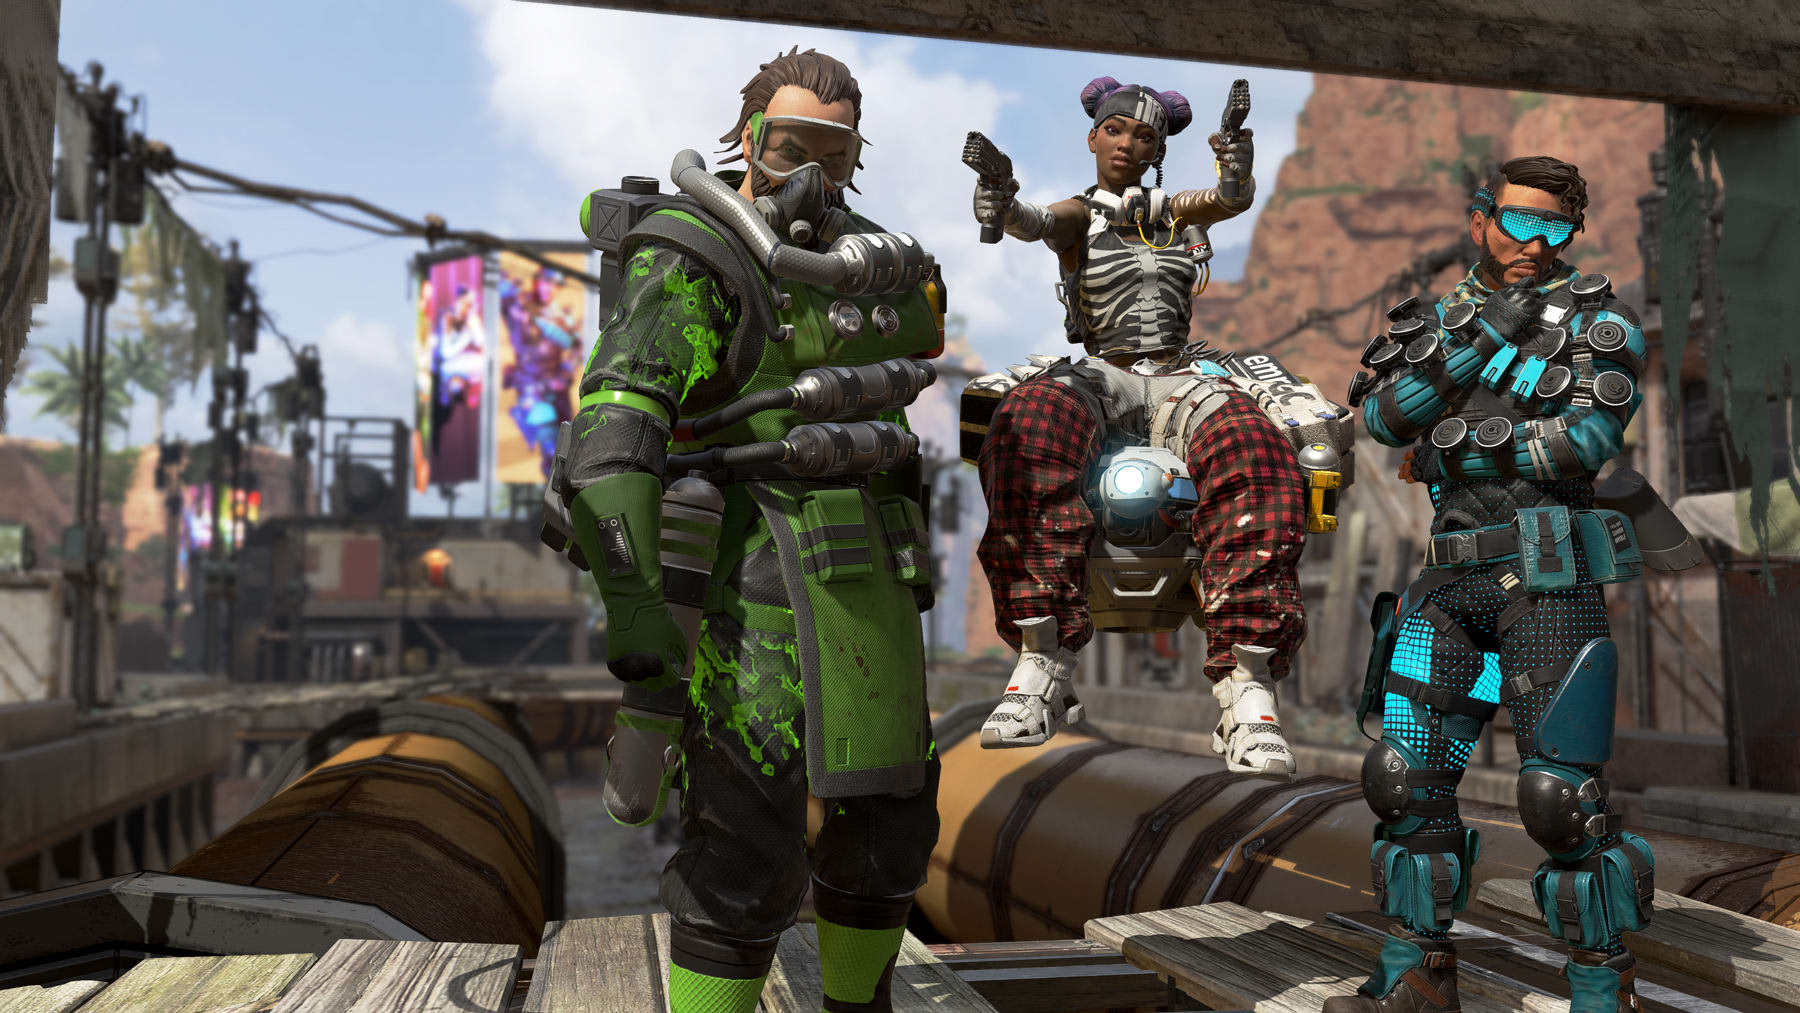 Apex Legends' isn't 'Titanfall 3', and that's okay